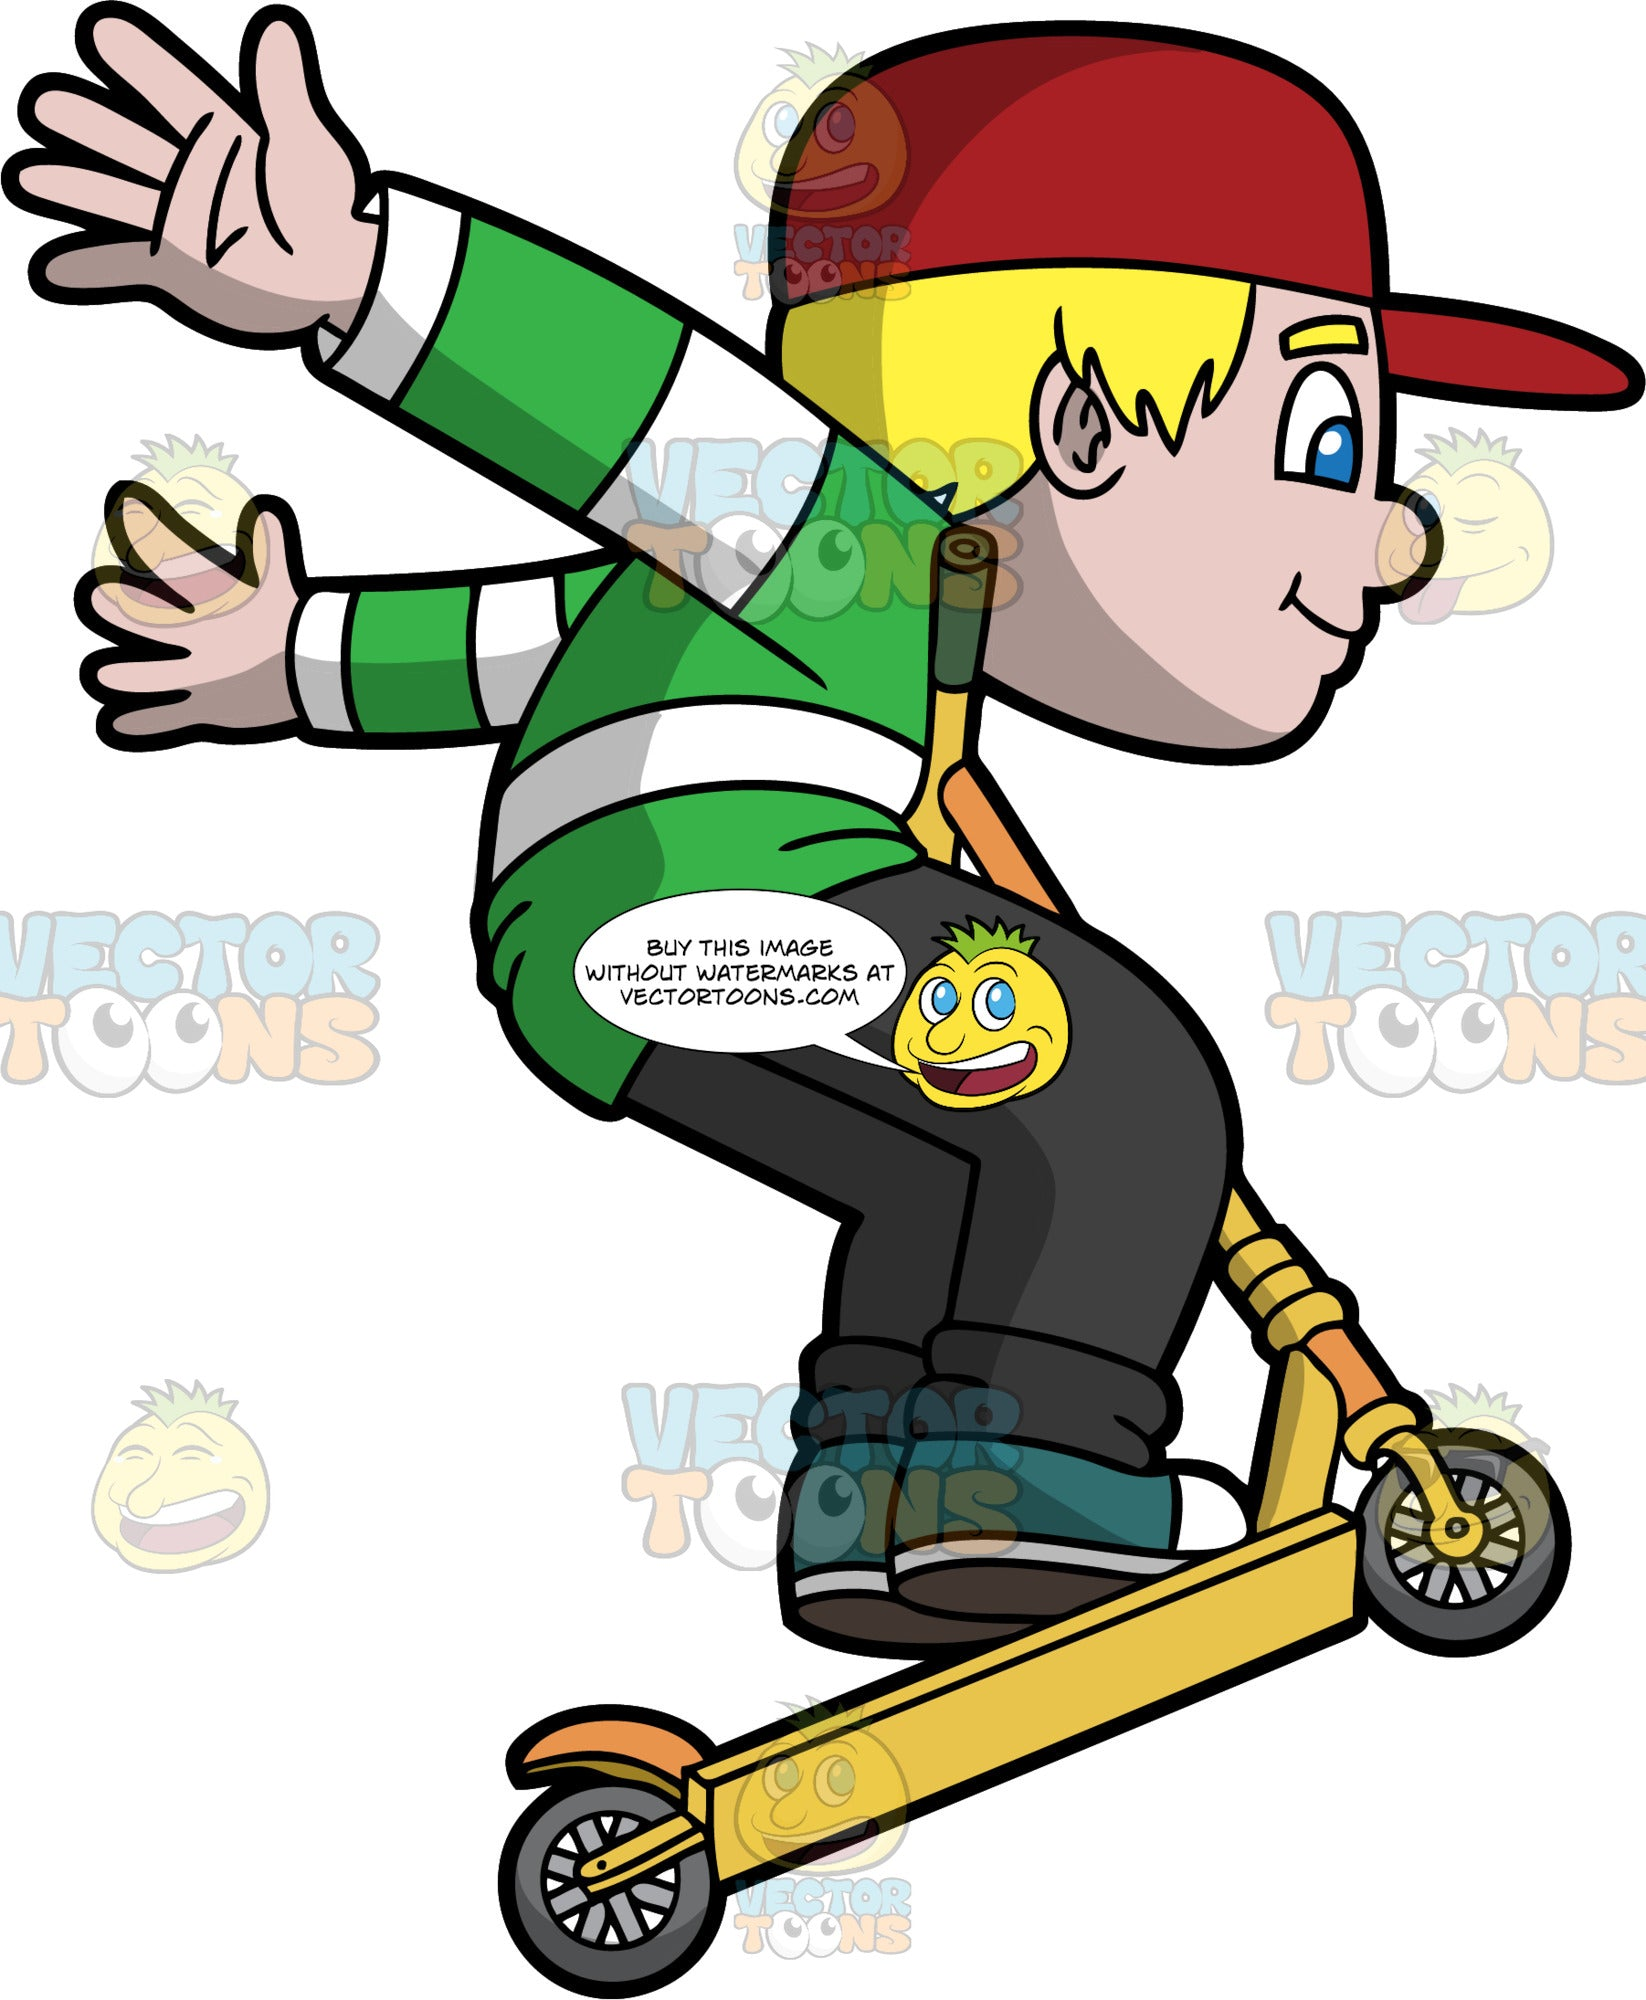 An Energetic Boy Jumps With A Scooter. A boy with blonde hair, wearing a red cap, striped green and white shirt, black shoes, dark green with white sneakers, swings his arm backwards while jumping to take his orange and yellow scooter with gray wheels up with him